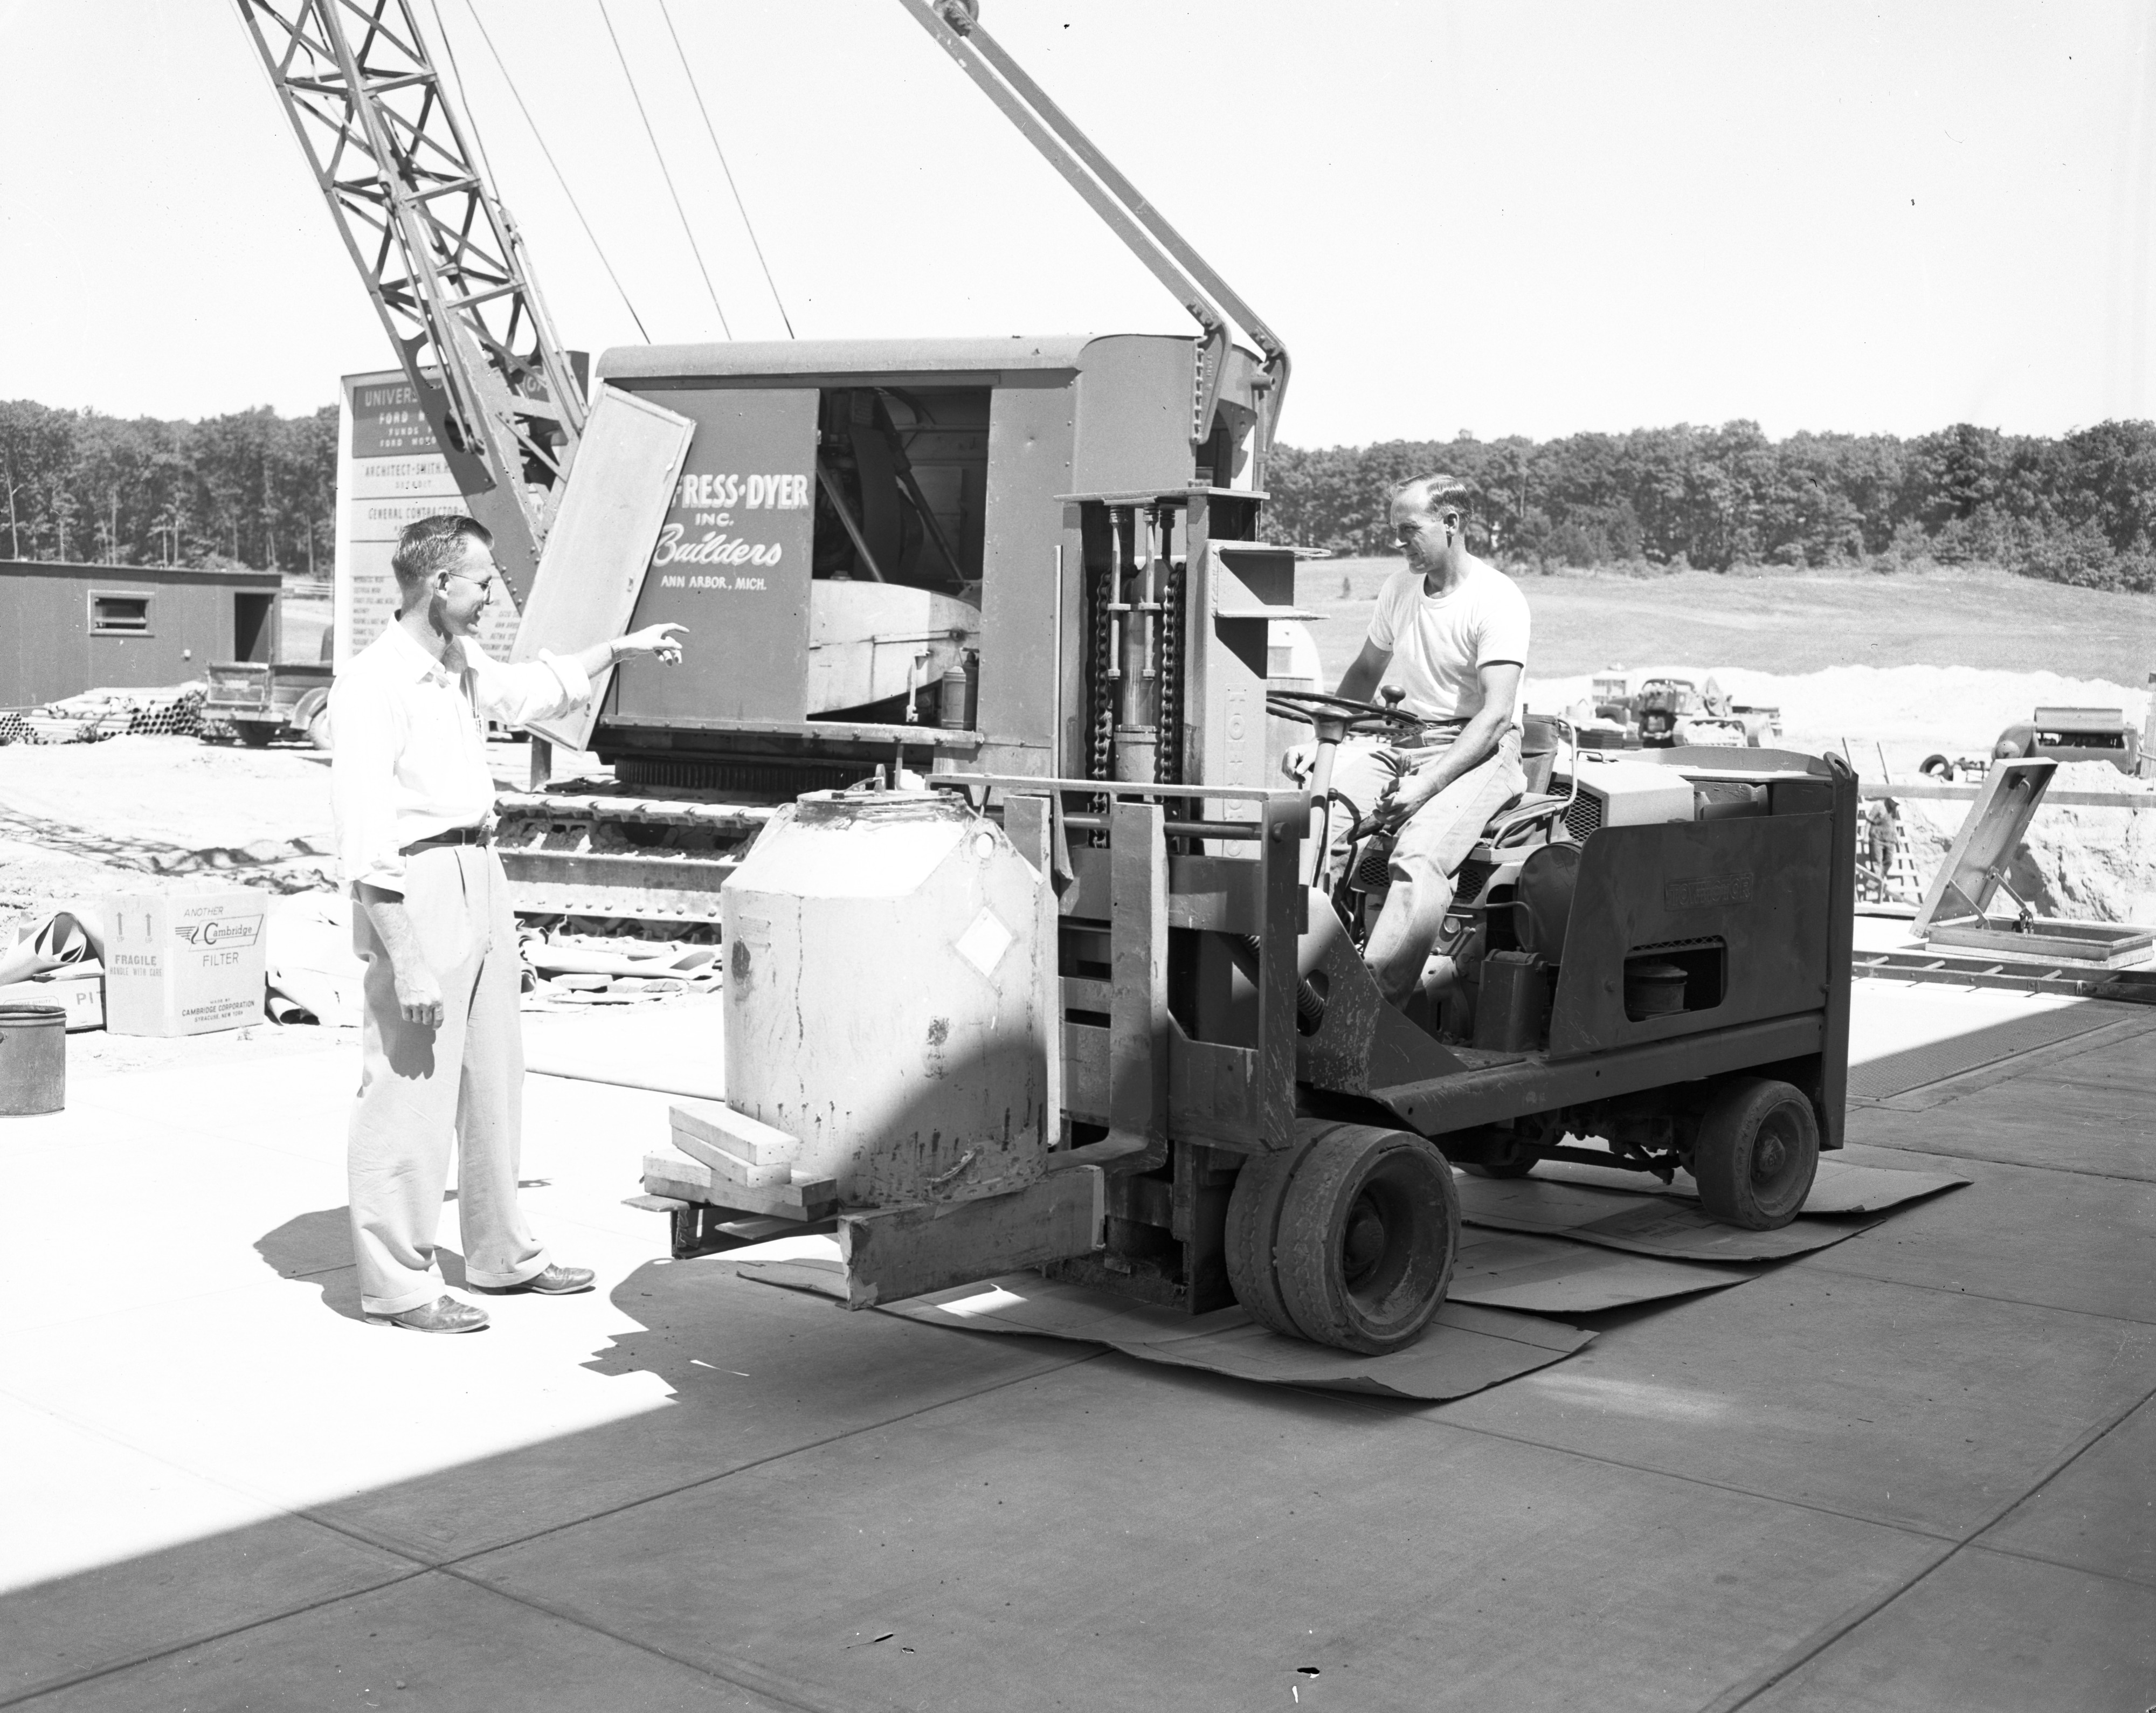 Four-ton box containing radioactive cobalt arrives at the U-M Phoenix Memorial Laboratory on North Campus, July 1955 image